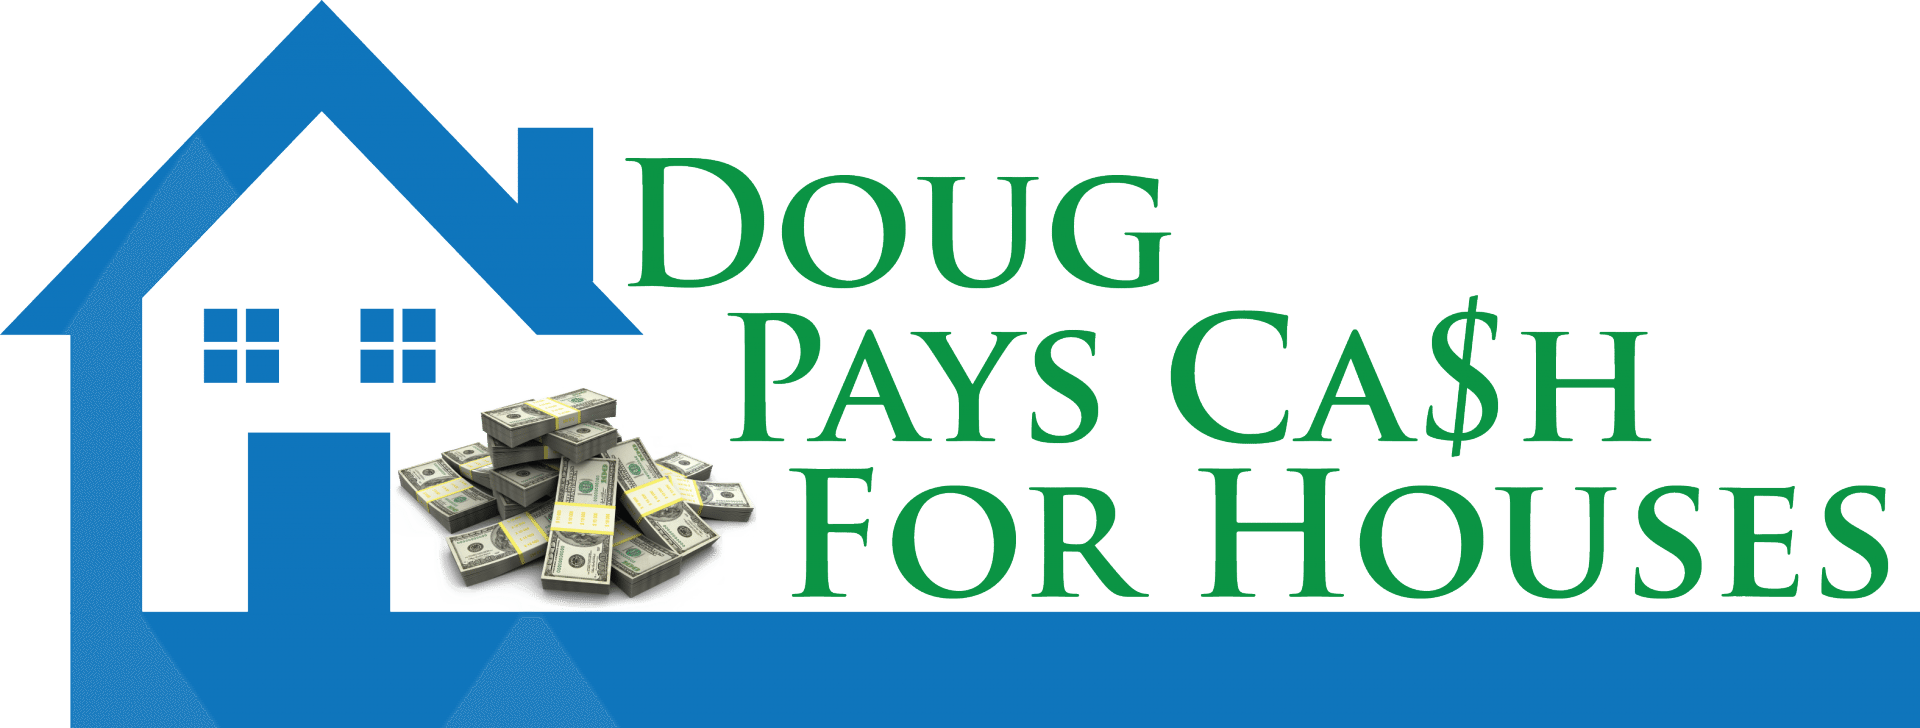 Doug Pays Cash For Houses logo